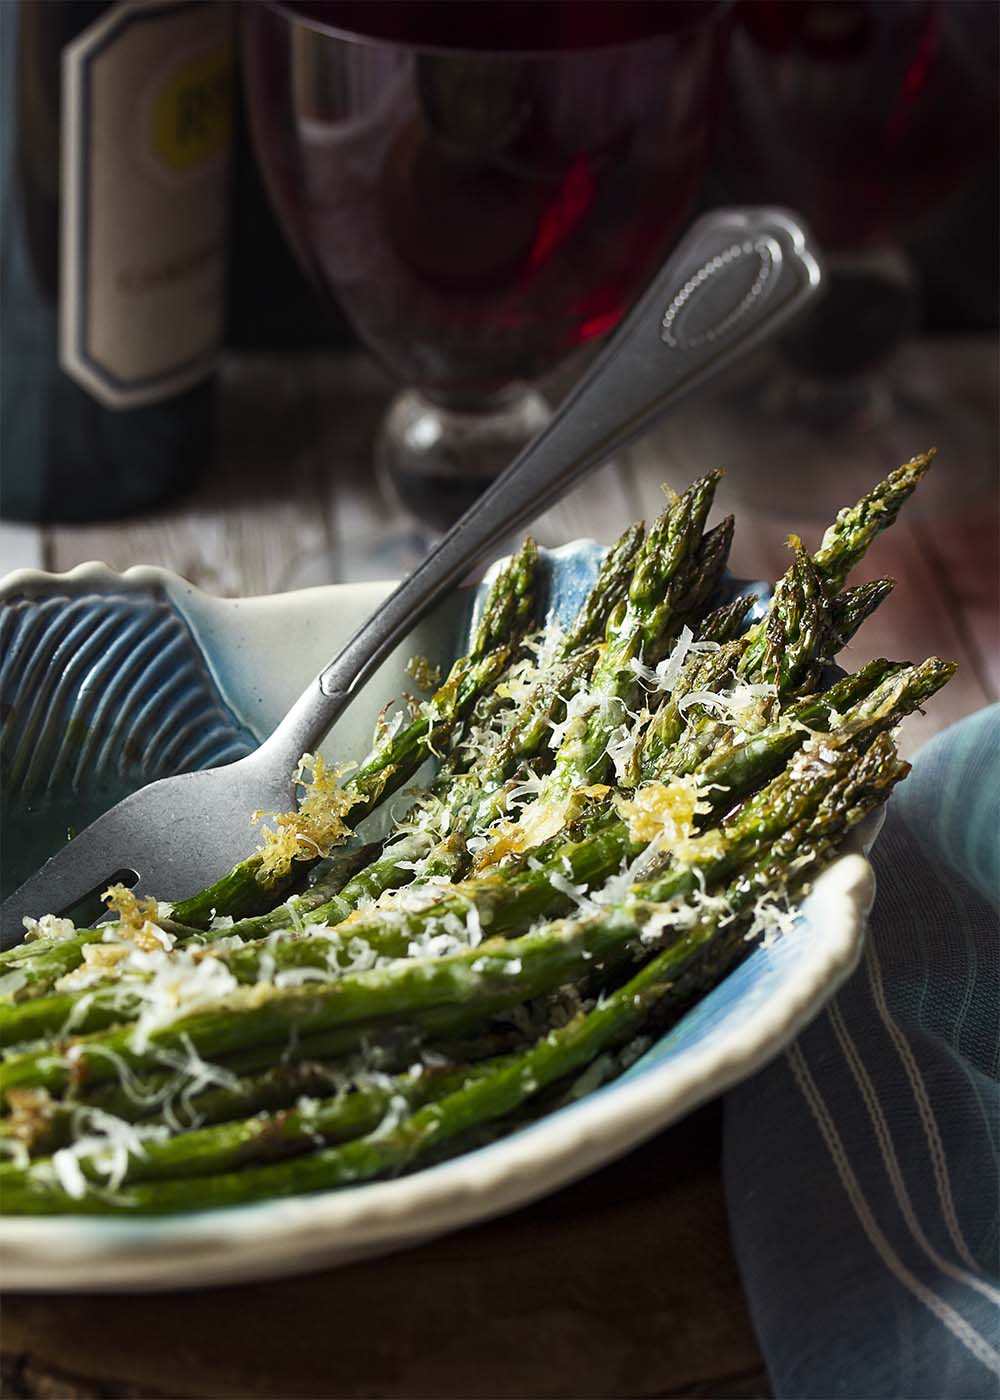 A serving dish filled with asparagus. A serving fork in the dish. Wine bottle and glasses in the background.